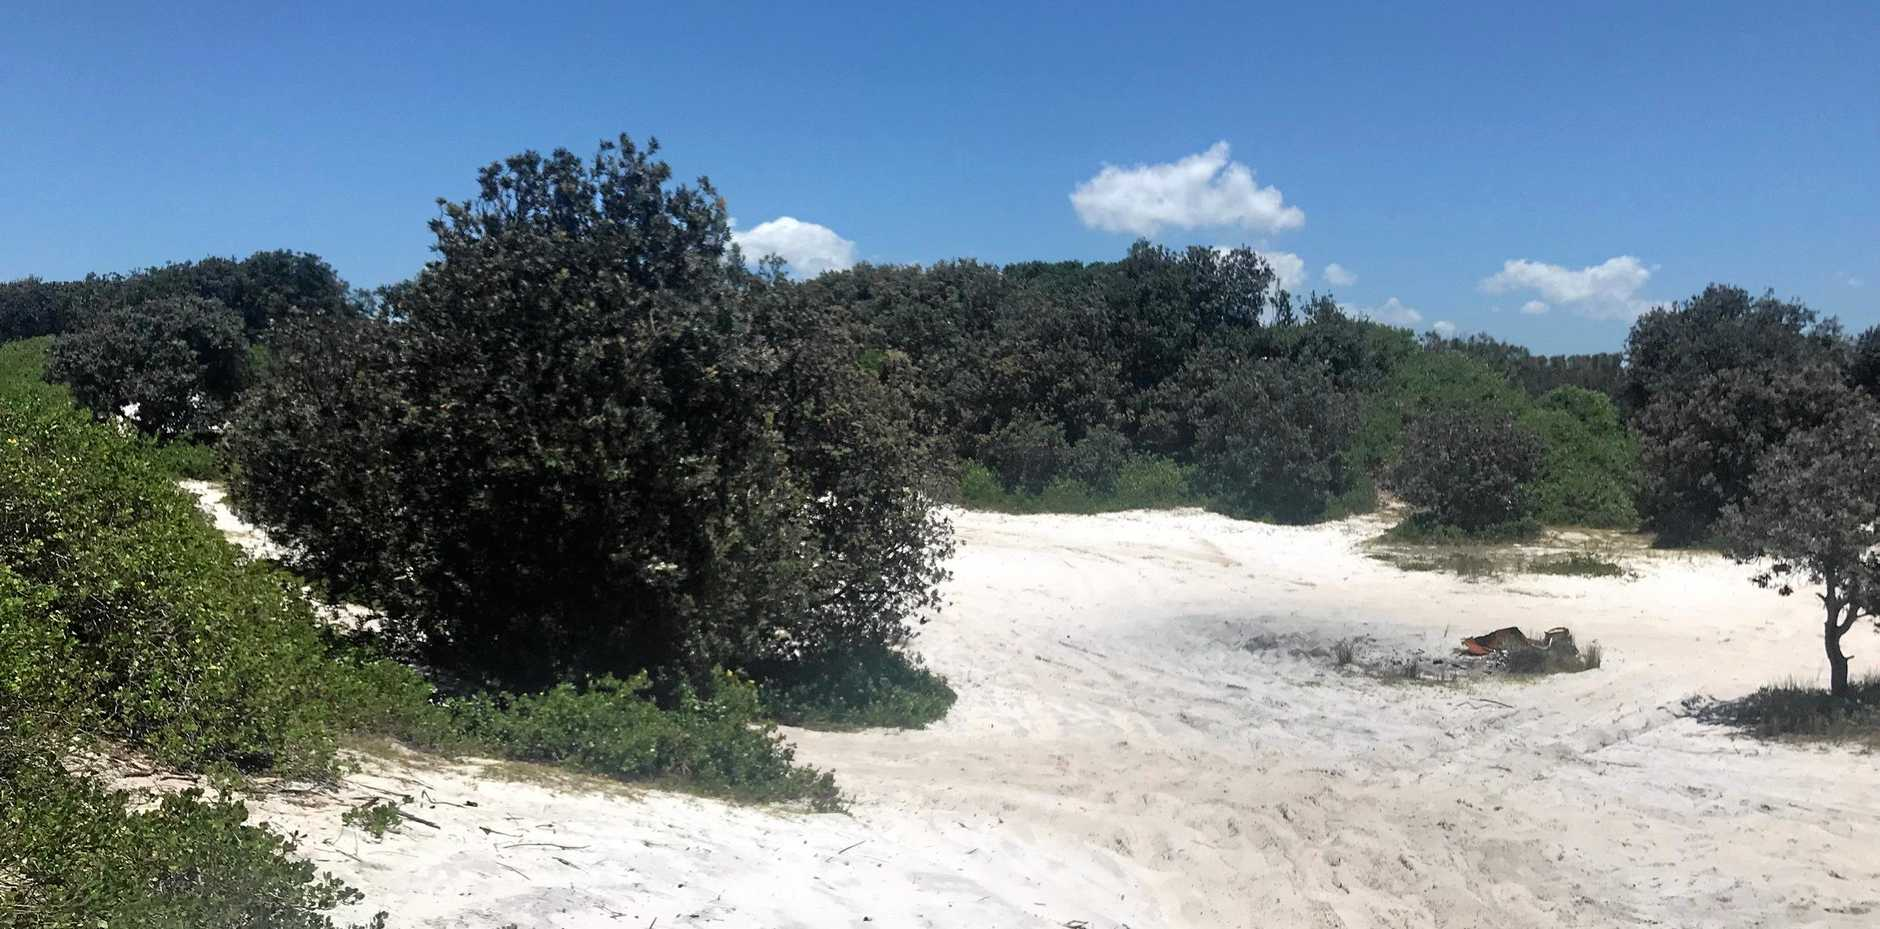 An Empire Vale resident has slammed irresponsible 4WDers who have been tearing up beaches at South Ballina.